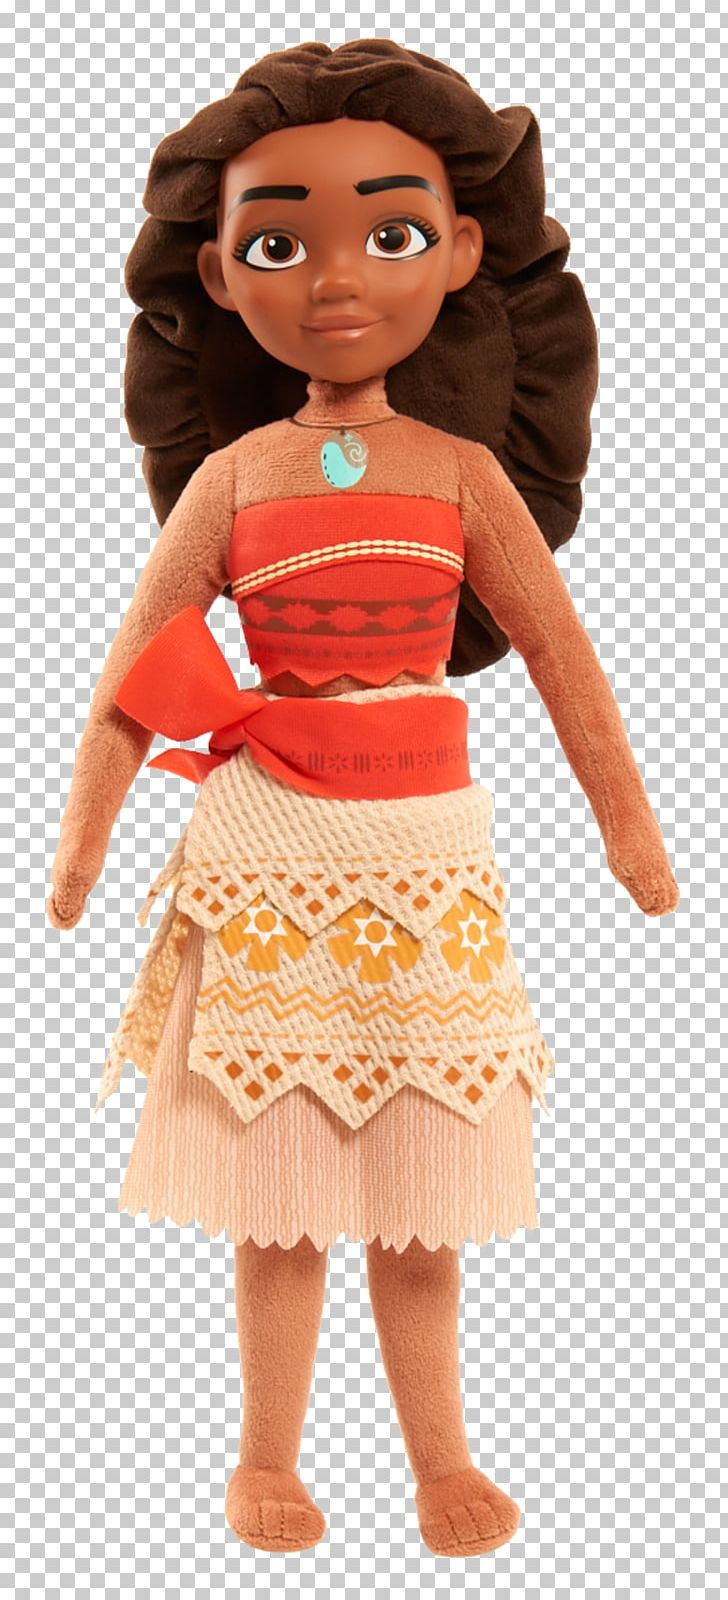 Doll Toys In Amazon Moana Amazon Stuffed Animals Cuddly Toys Doll Png